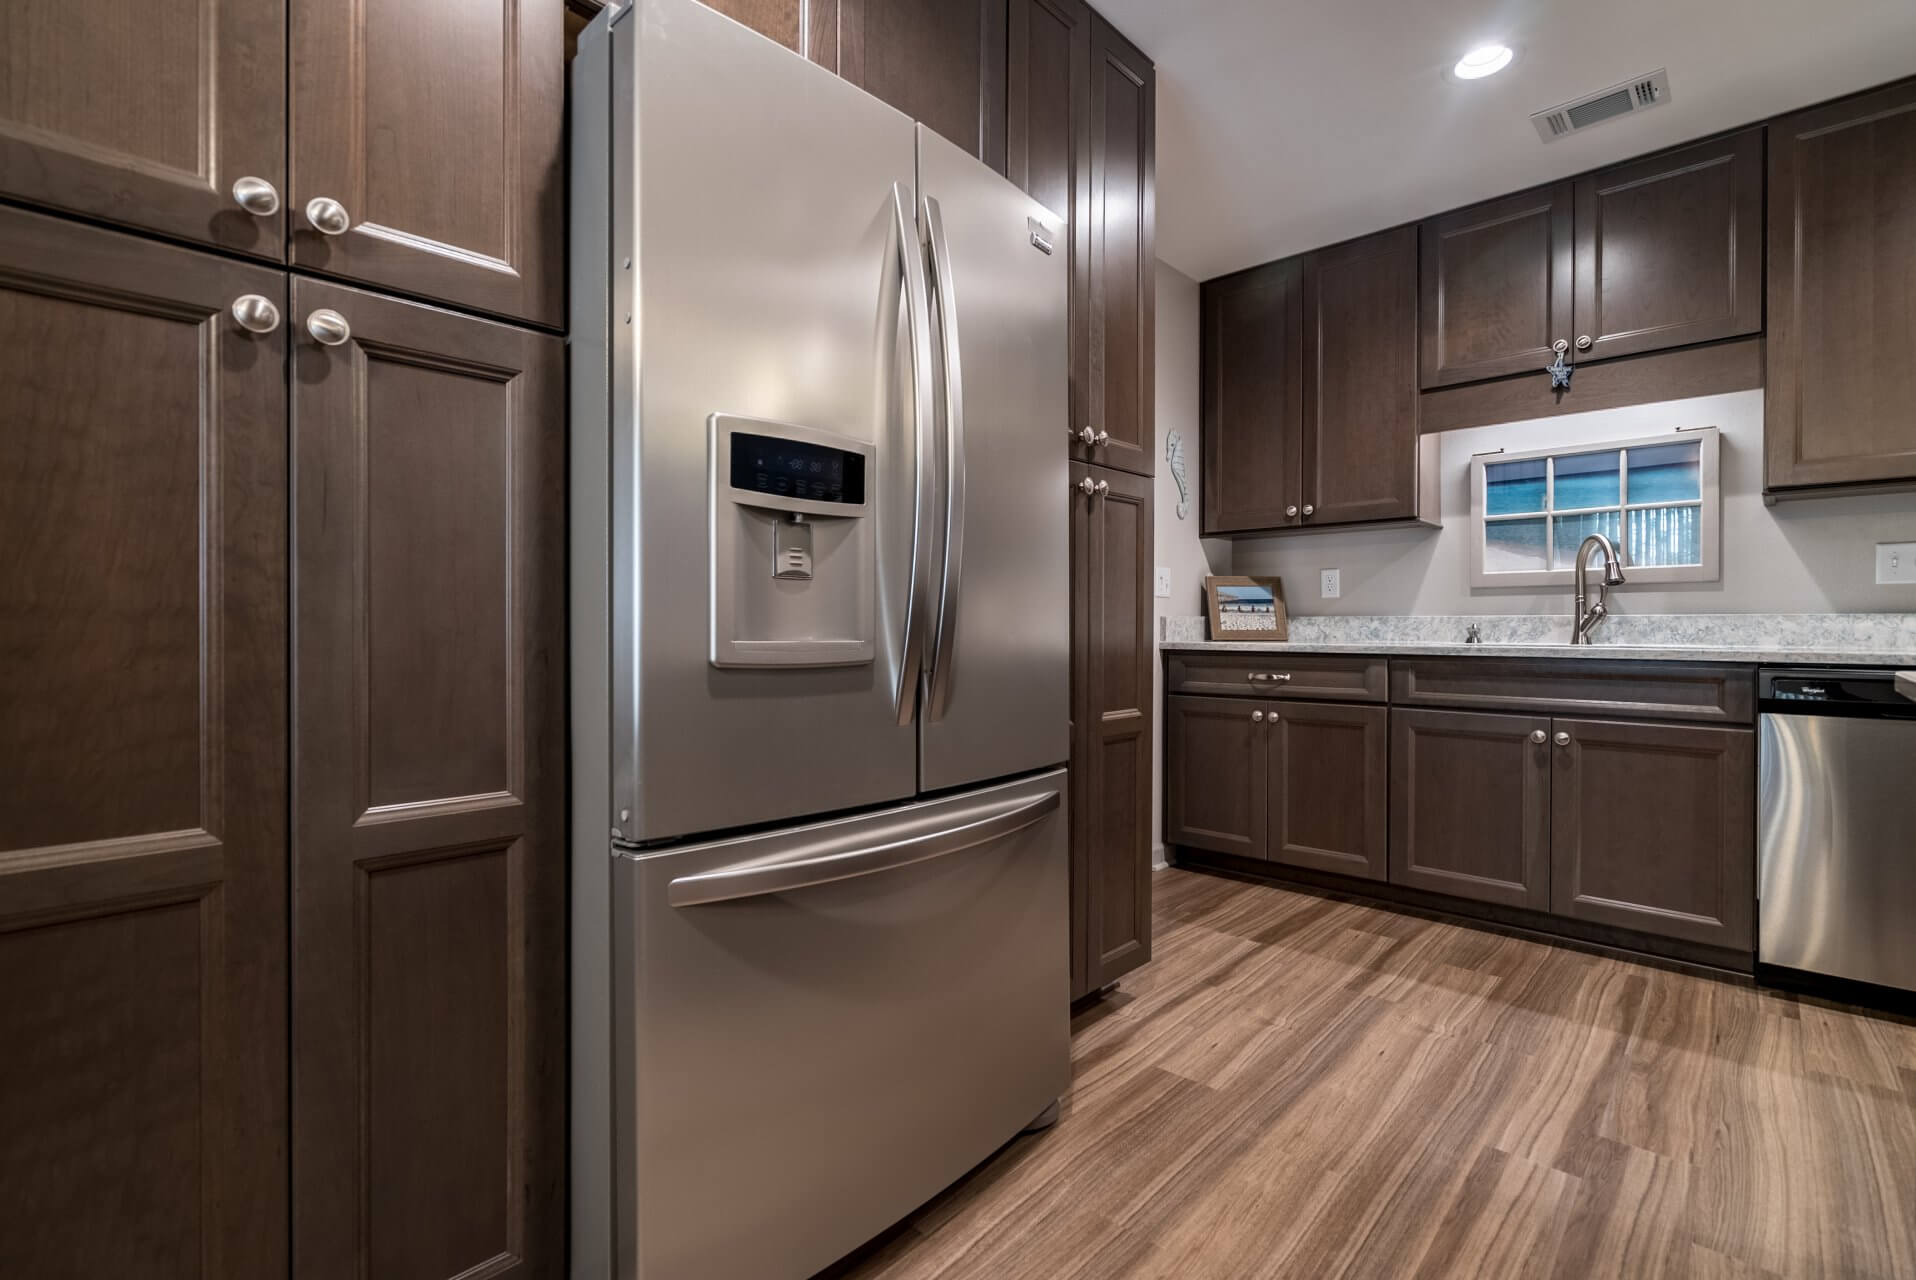 Transitional Style Kitchen refrigerator